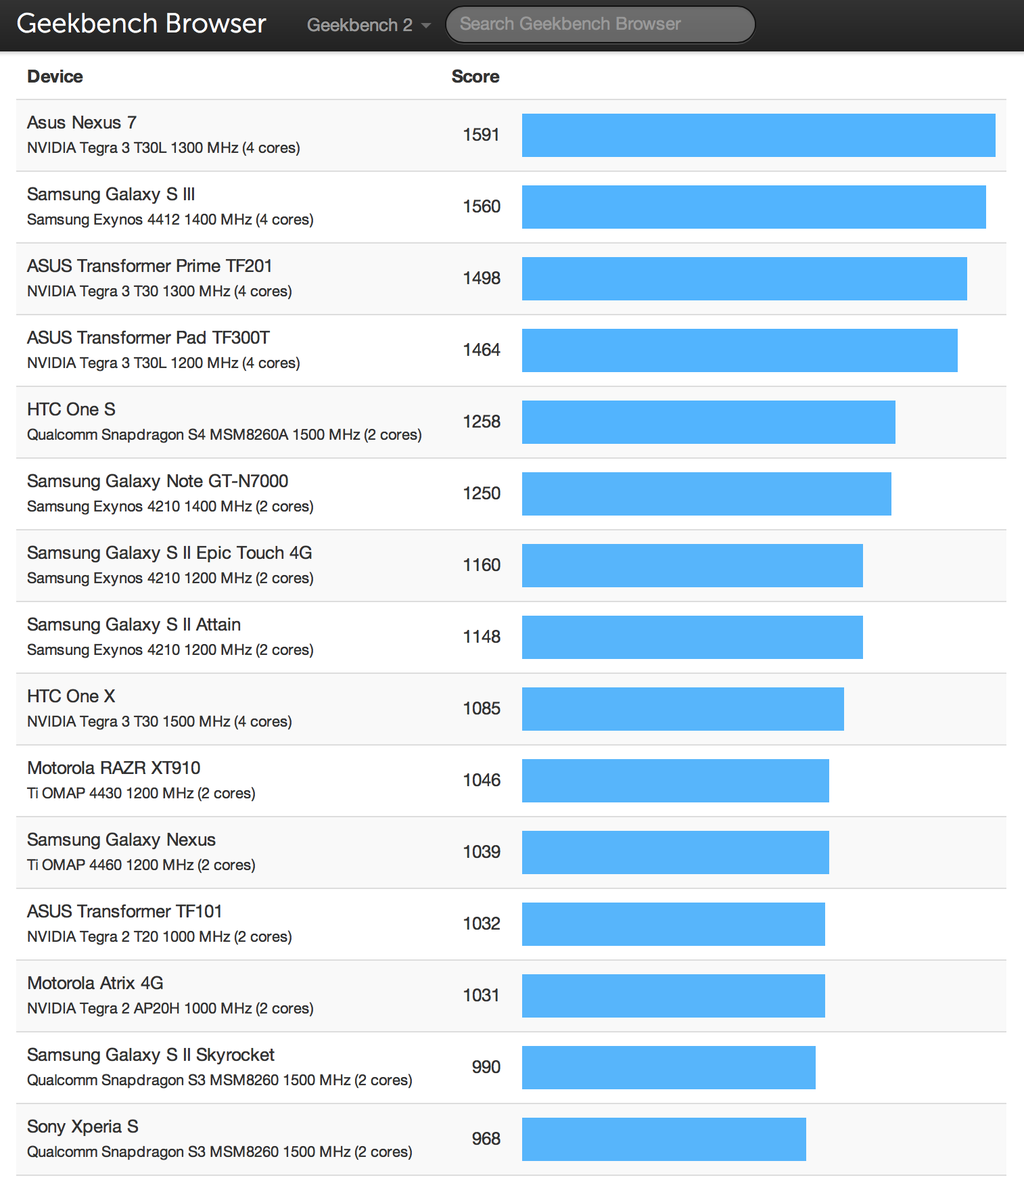 Android Benchmarks - Geekbench Browser